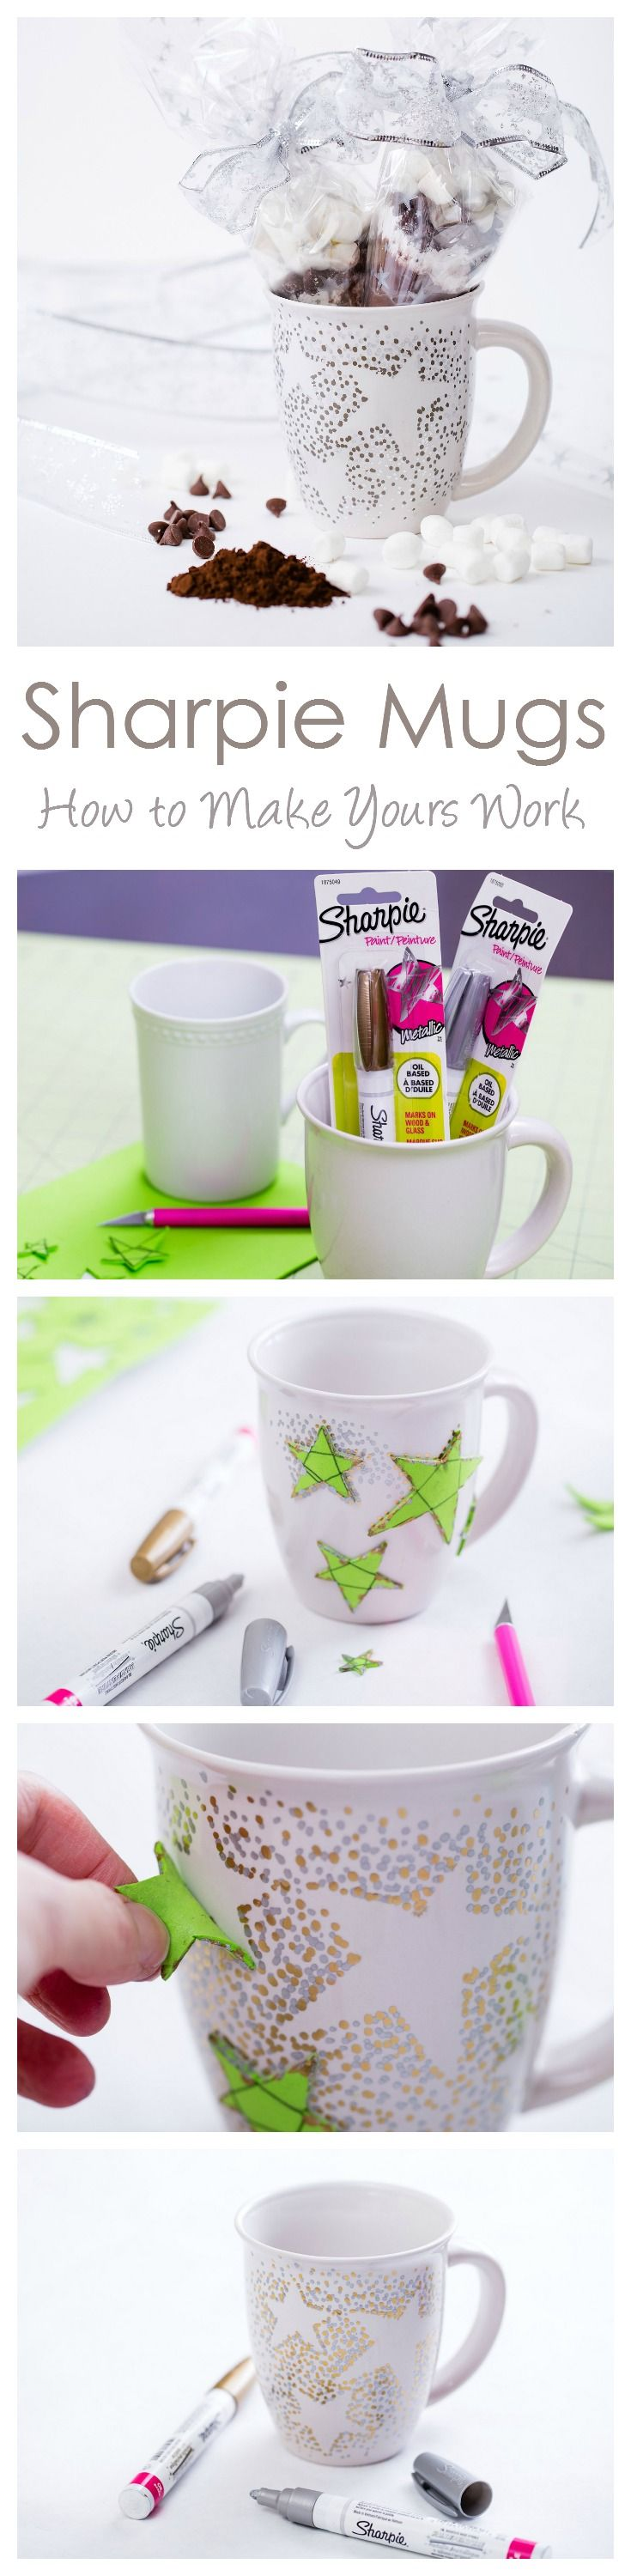 Sharpie Mug with Oil Based Sharpies - Let us show you how we made our Sharpie Mugs and how we made sure they worked out beautifully…